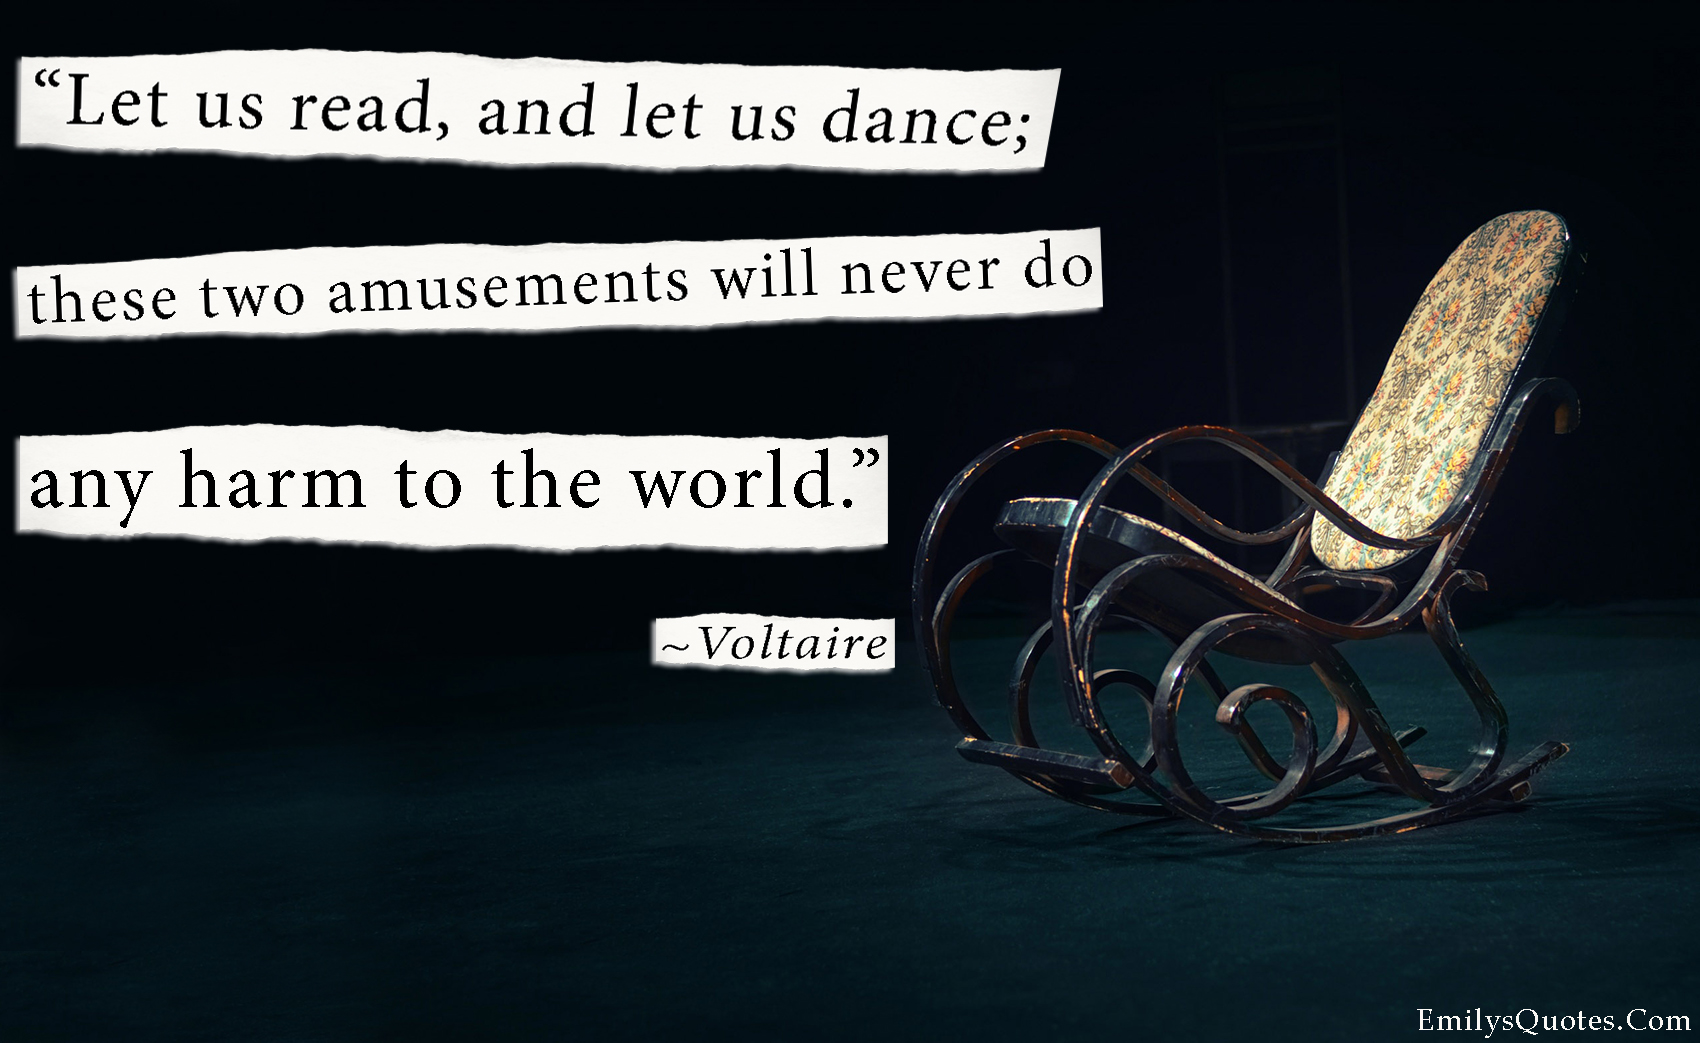 EmilysQuotes.Com - dance, read, amusement, harm, world, peace, intelligence,  Voltaire